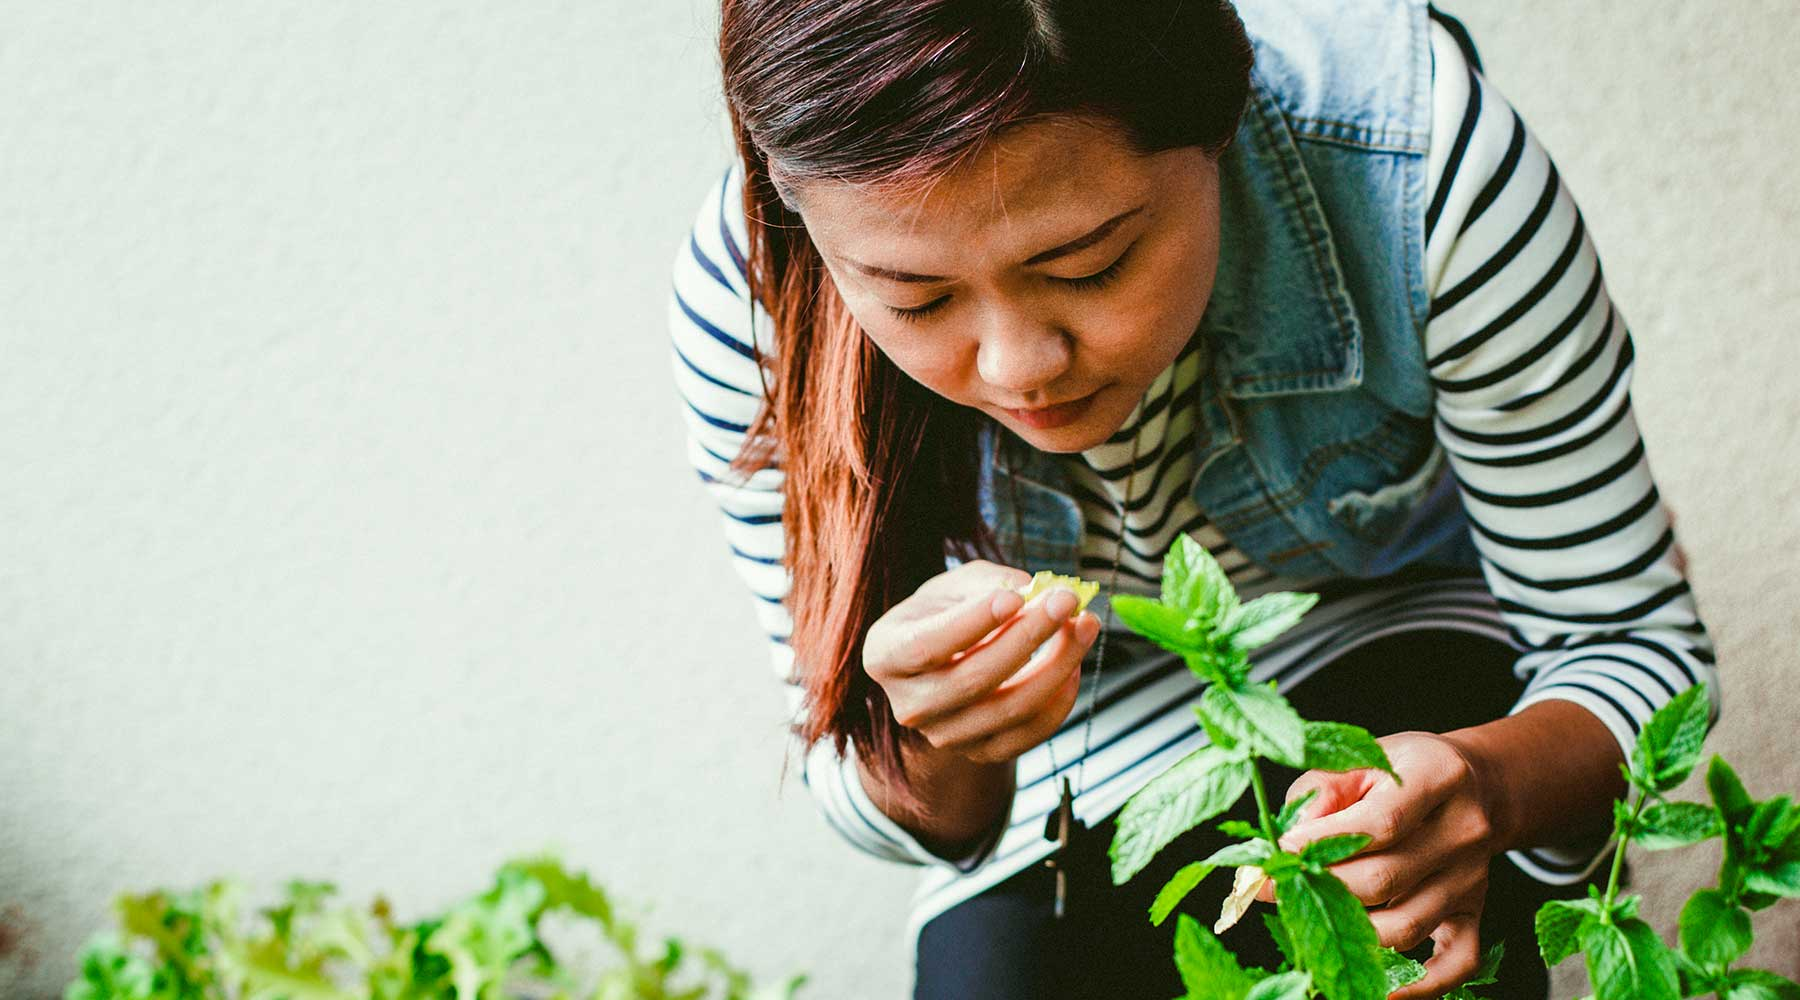 Does It Cost Less To Grow an Herb Garden?